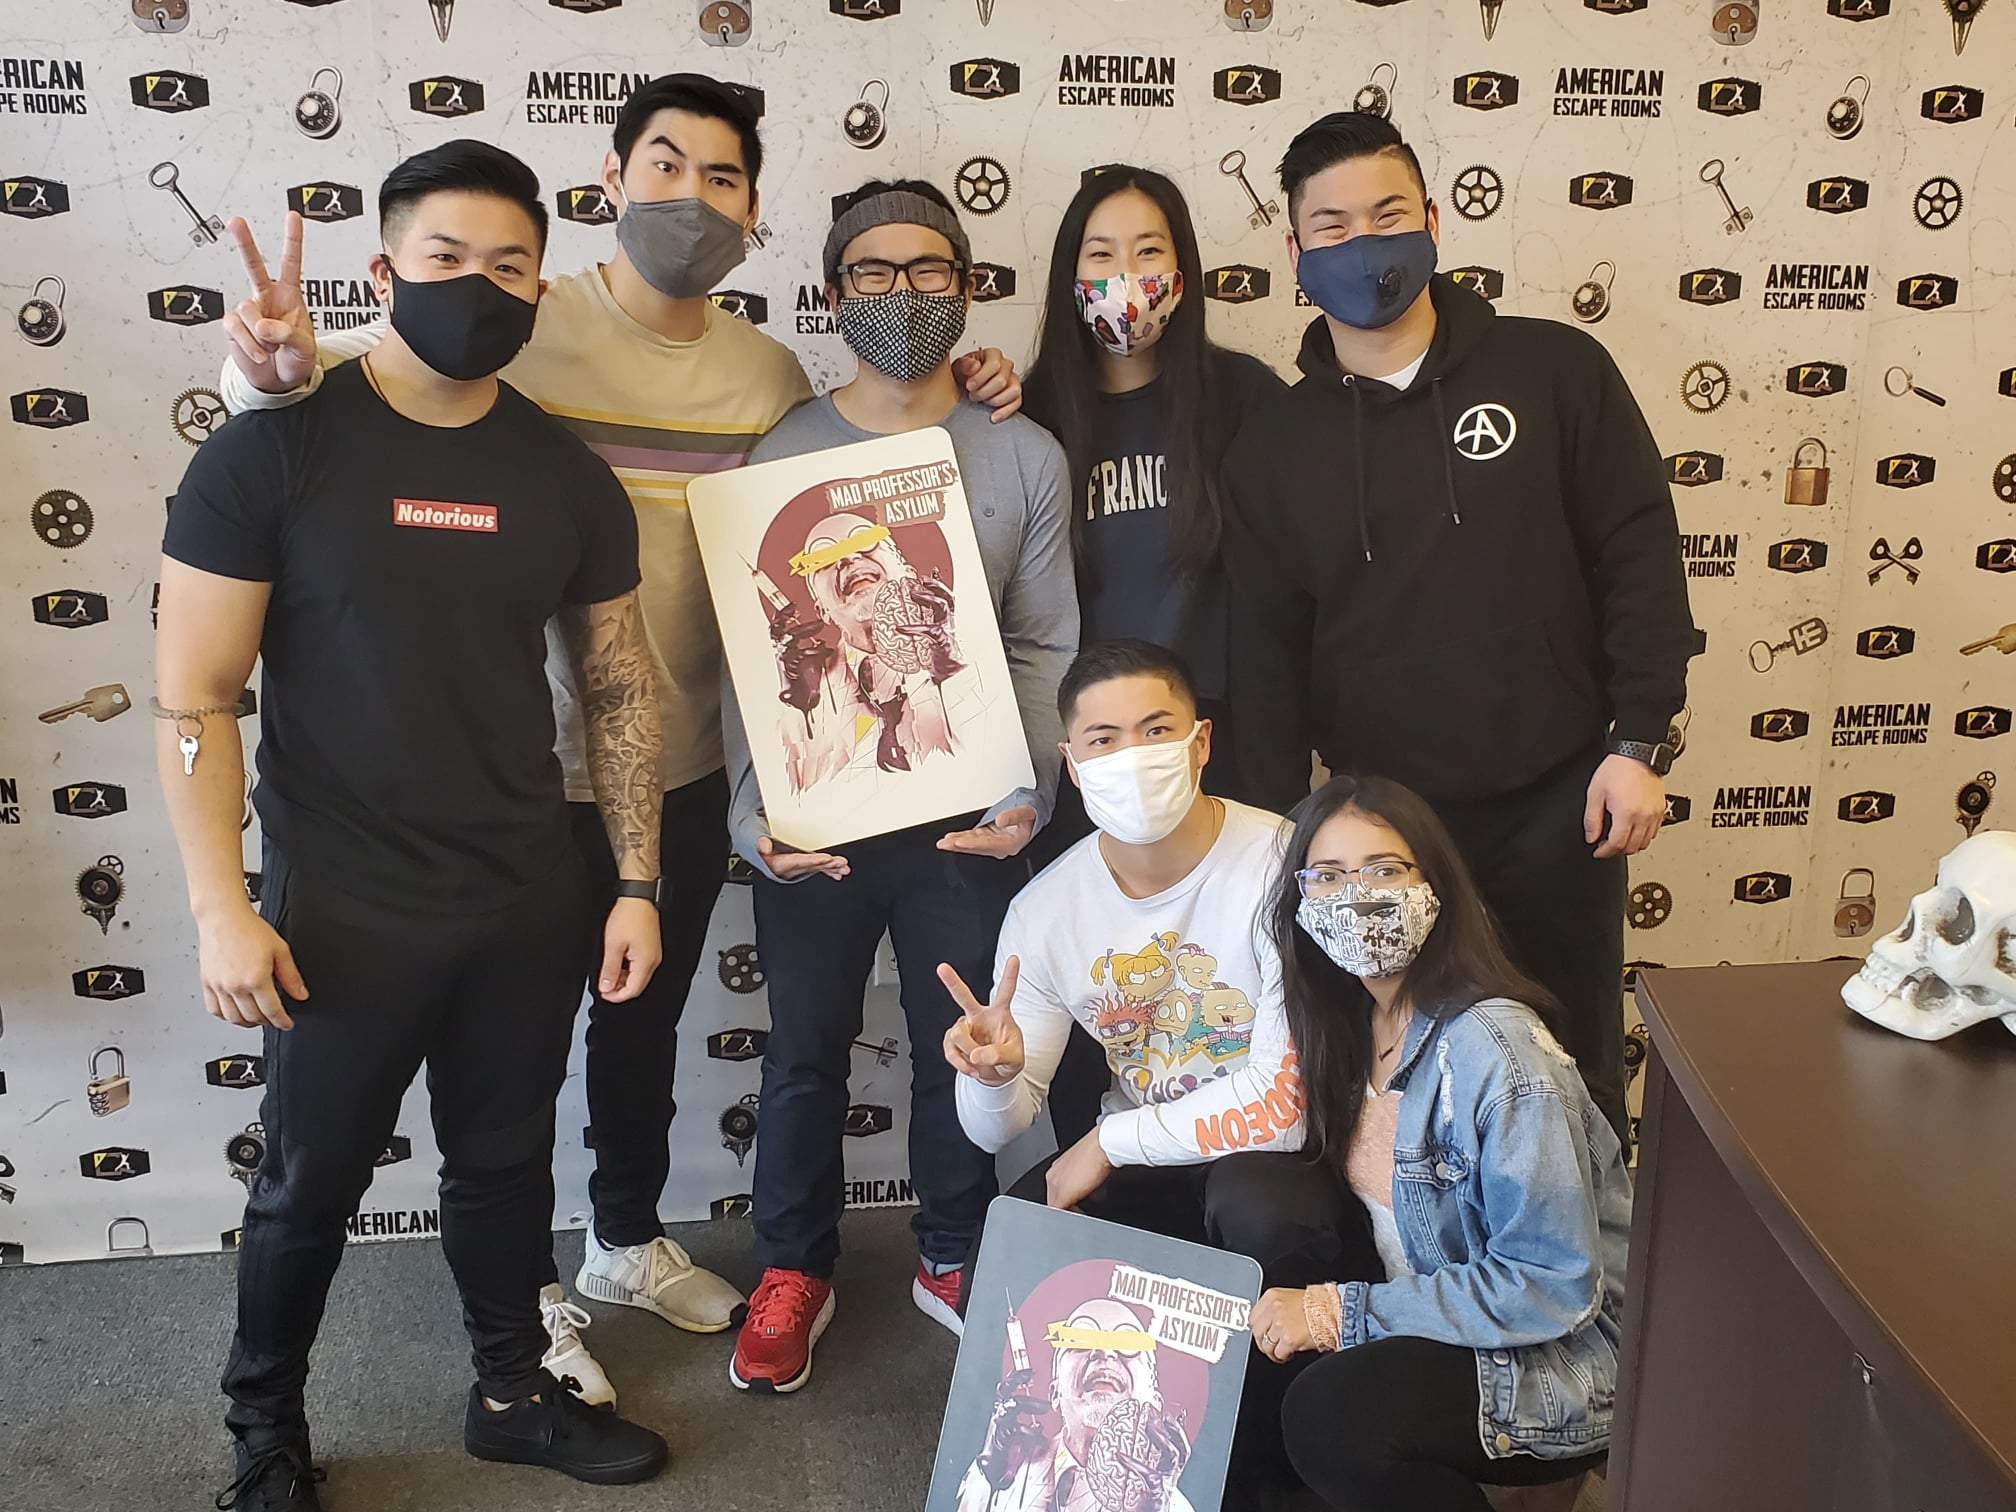 Yuliana's 'Big Brain' Birthday Squad played the Mad Professor's Asylum - Tampa and finished the game with 28 minutes 47 seconds left. Congratulations! Well done!